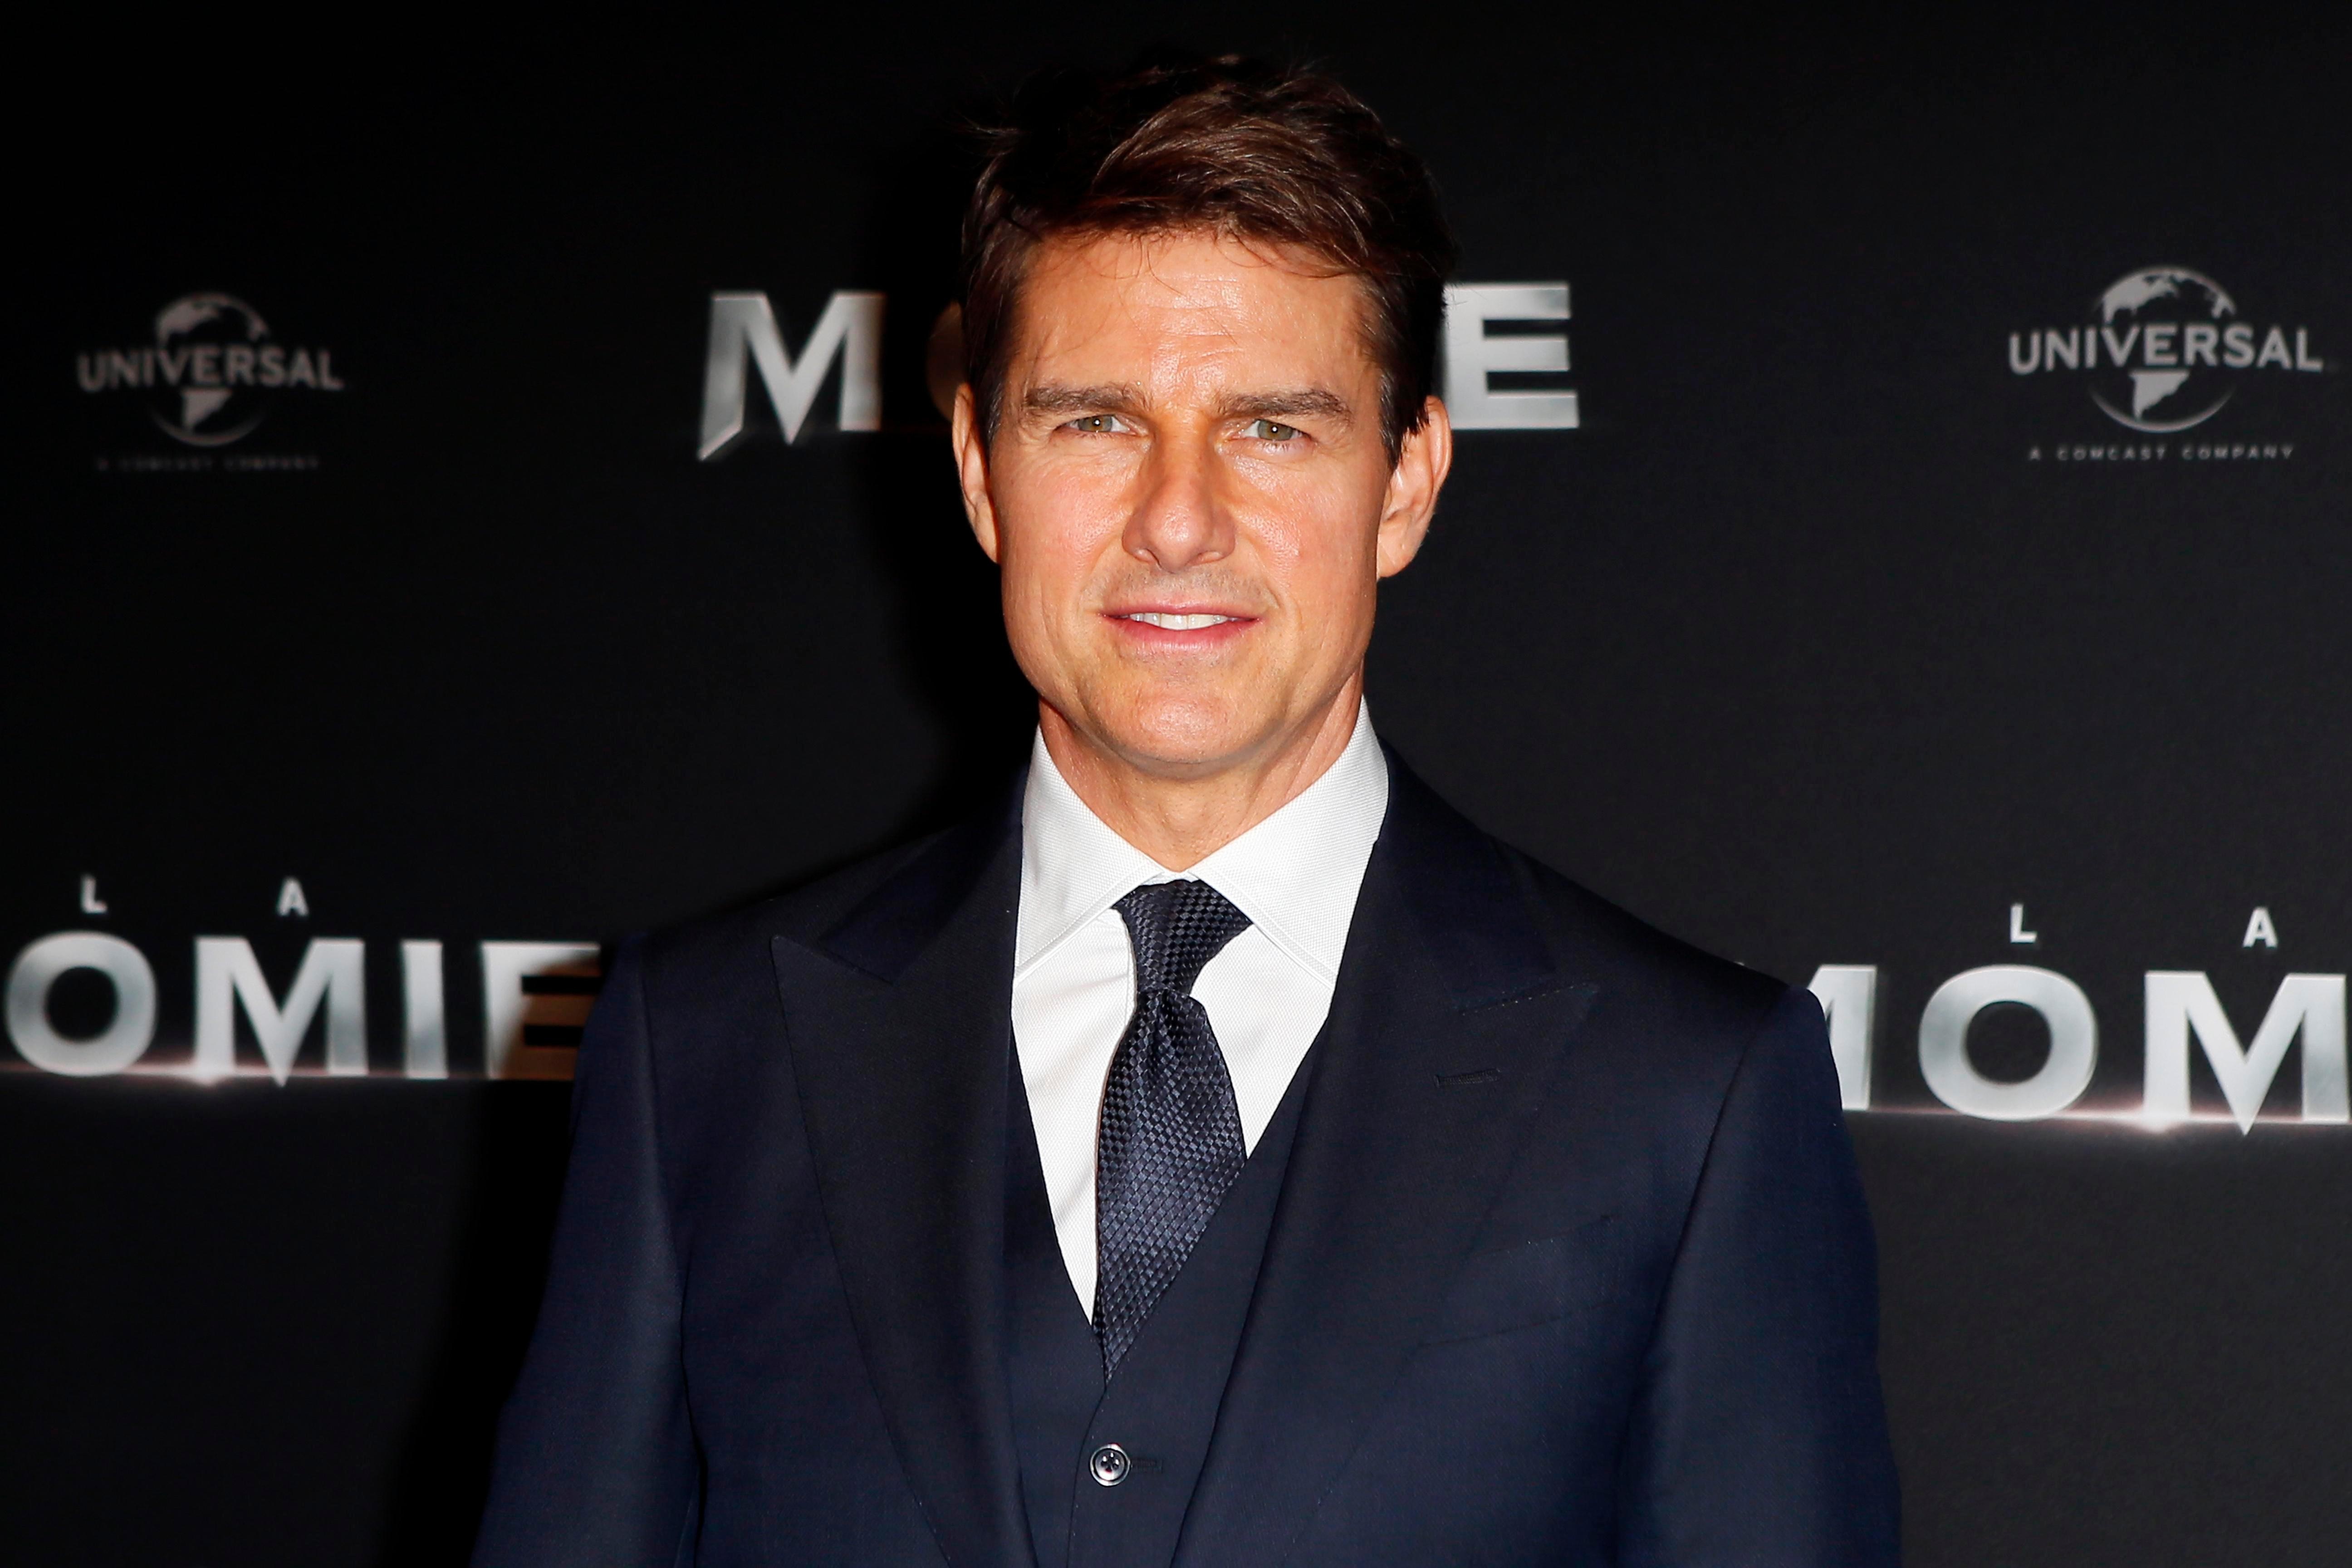 How old is Tom Cruise, what's the Mission: Impossible – Fallout star's net worth, how tall is he and what are his biggest movies?